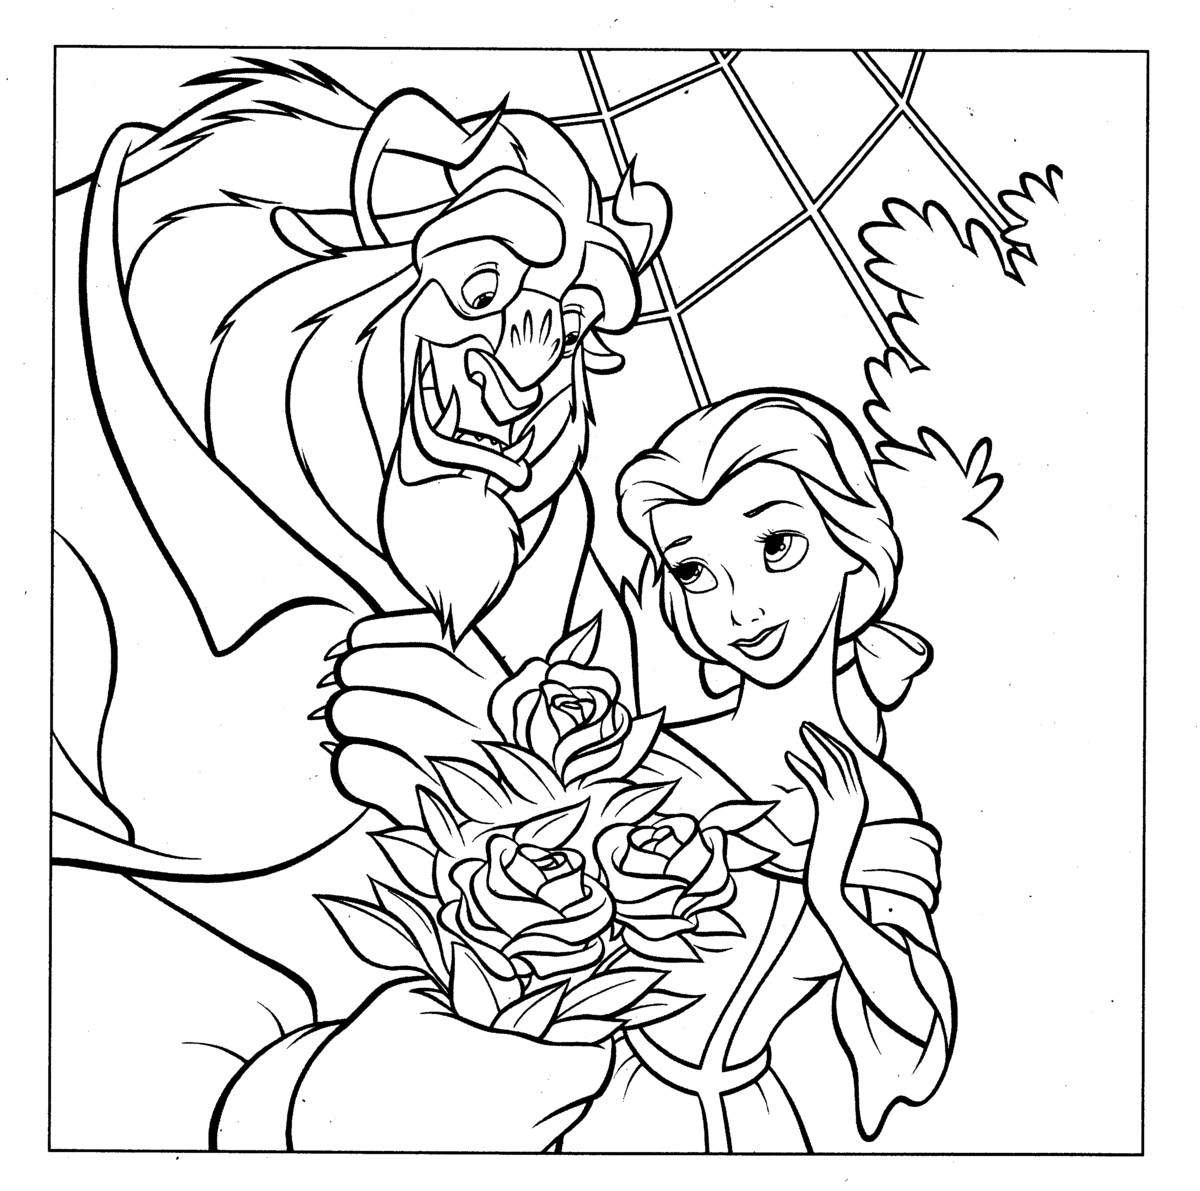 Beauty and the beast belle coloring pages download kids for Beauty and the beast coloring pages disney